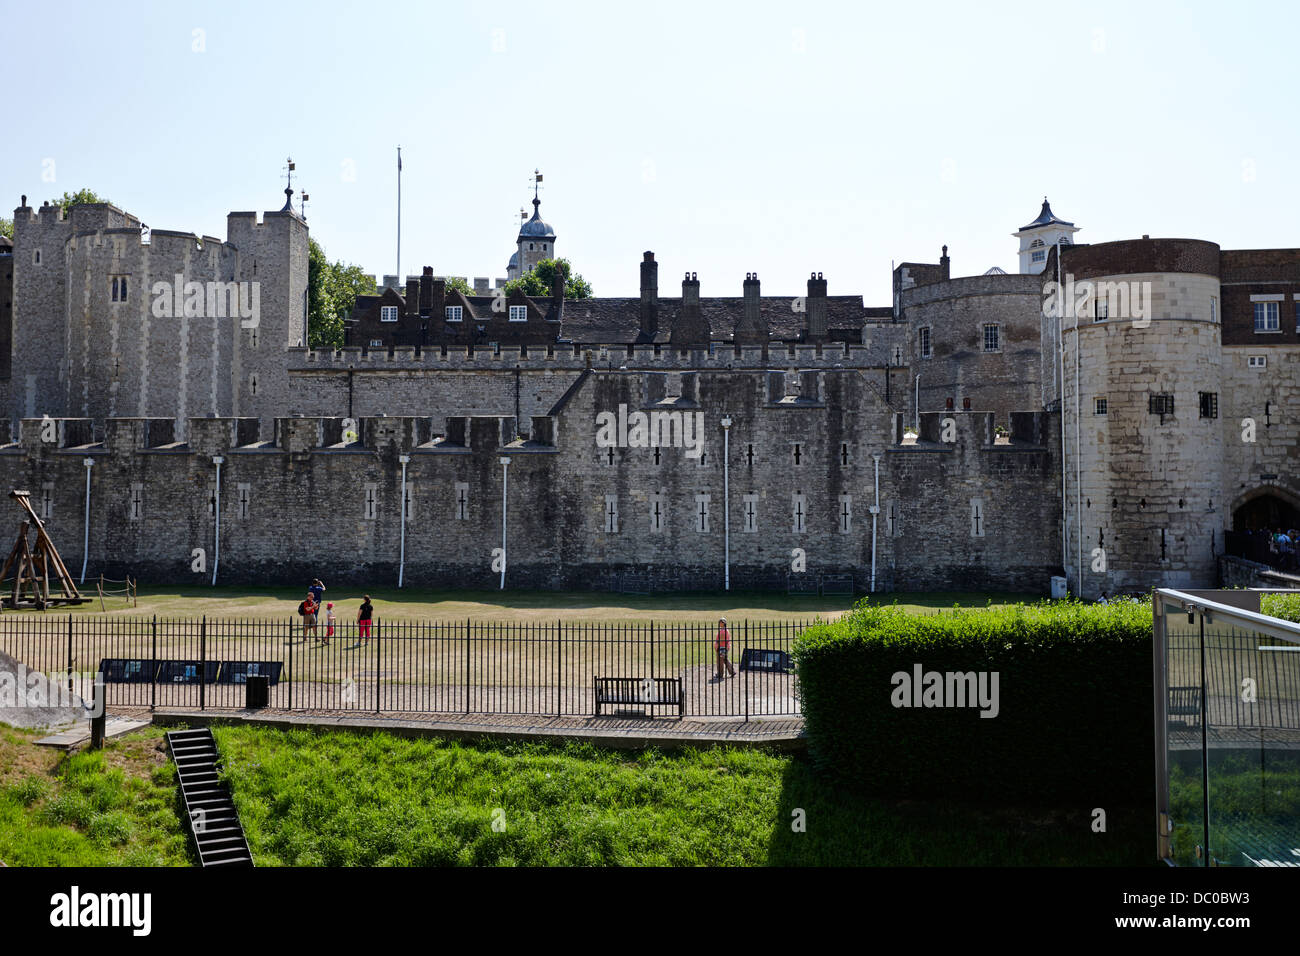 casemates and moat at the tower of London England UK - Stock Image